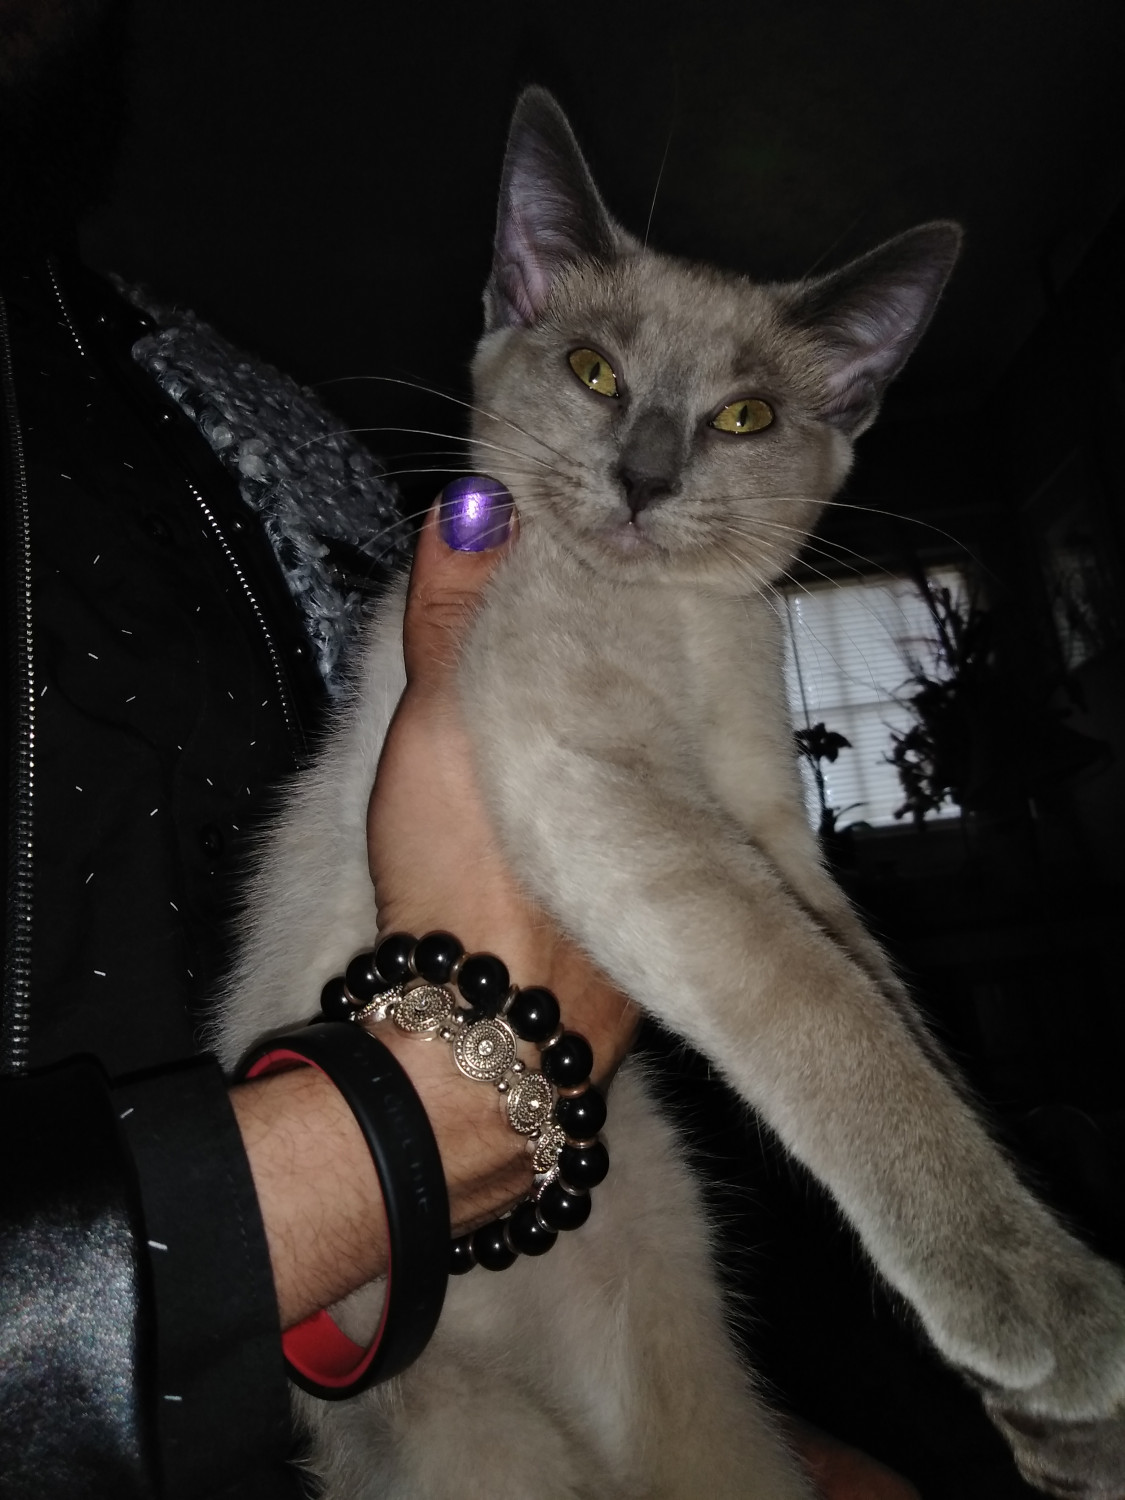 Purebred Russian Blue Kittens For Sale Near Me : purebred, russian, kittens, Russian, Roanoke,, #287049, Petzlover